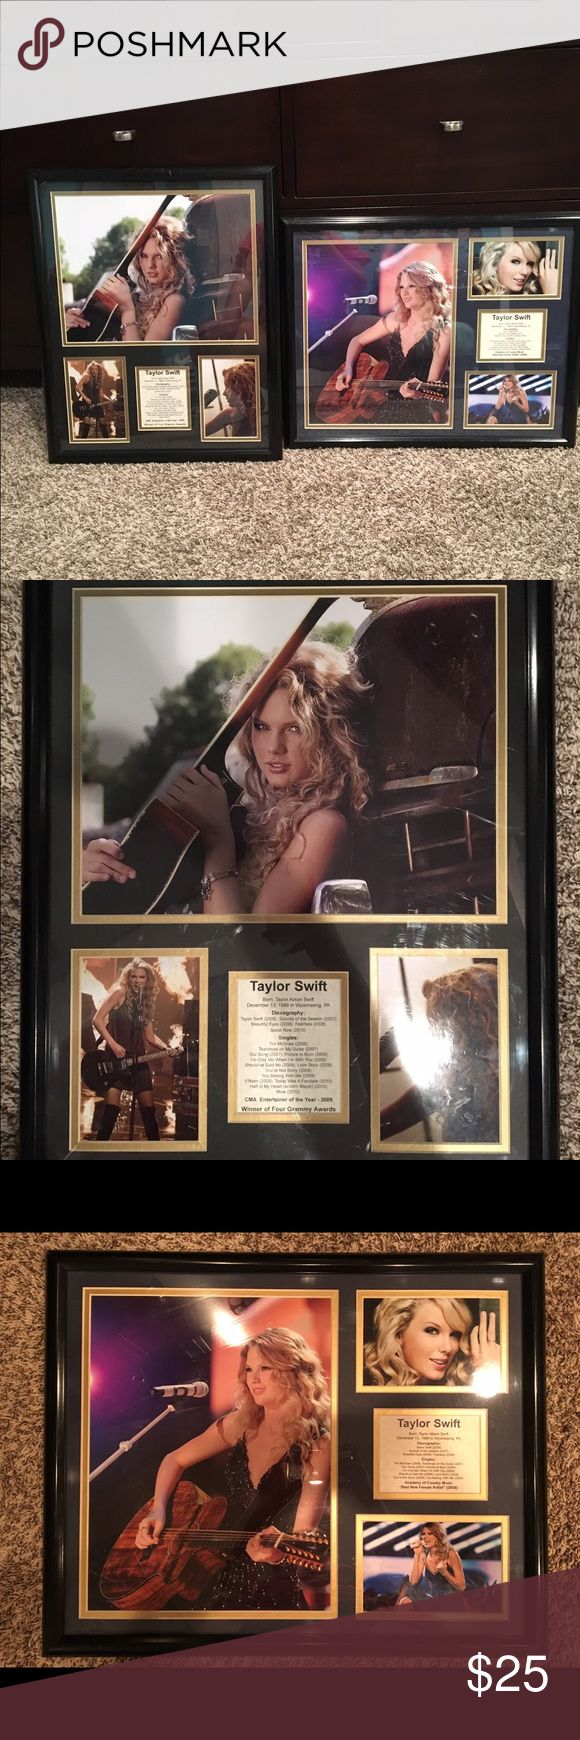 Taylor Swift Posters Two Taylor Swift posters 16x20. Pictures and discography, singles, awards, etc. Both come in frames and are in great condition Other